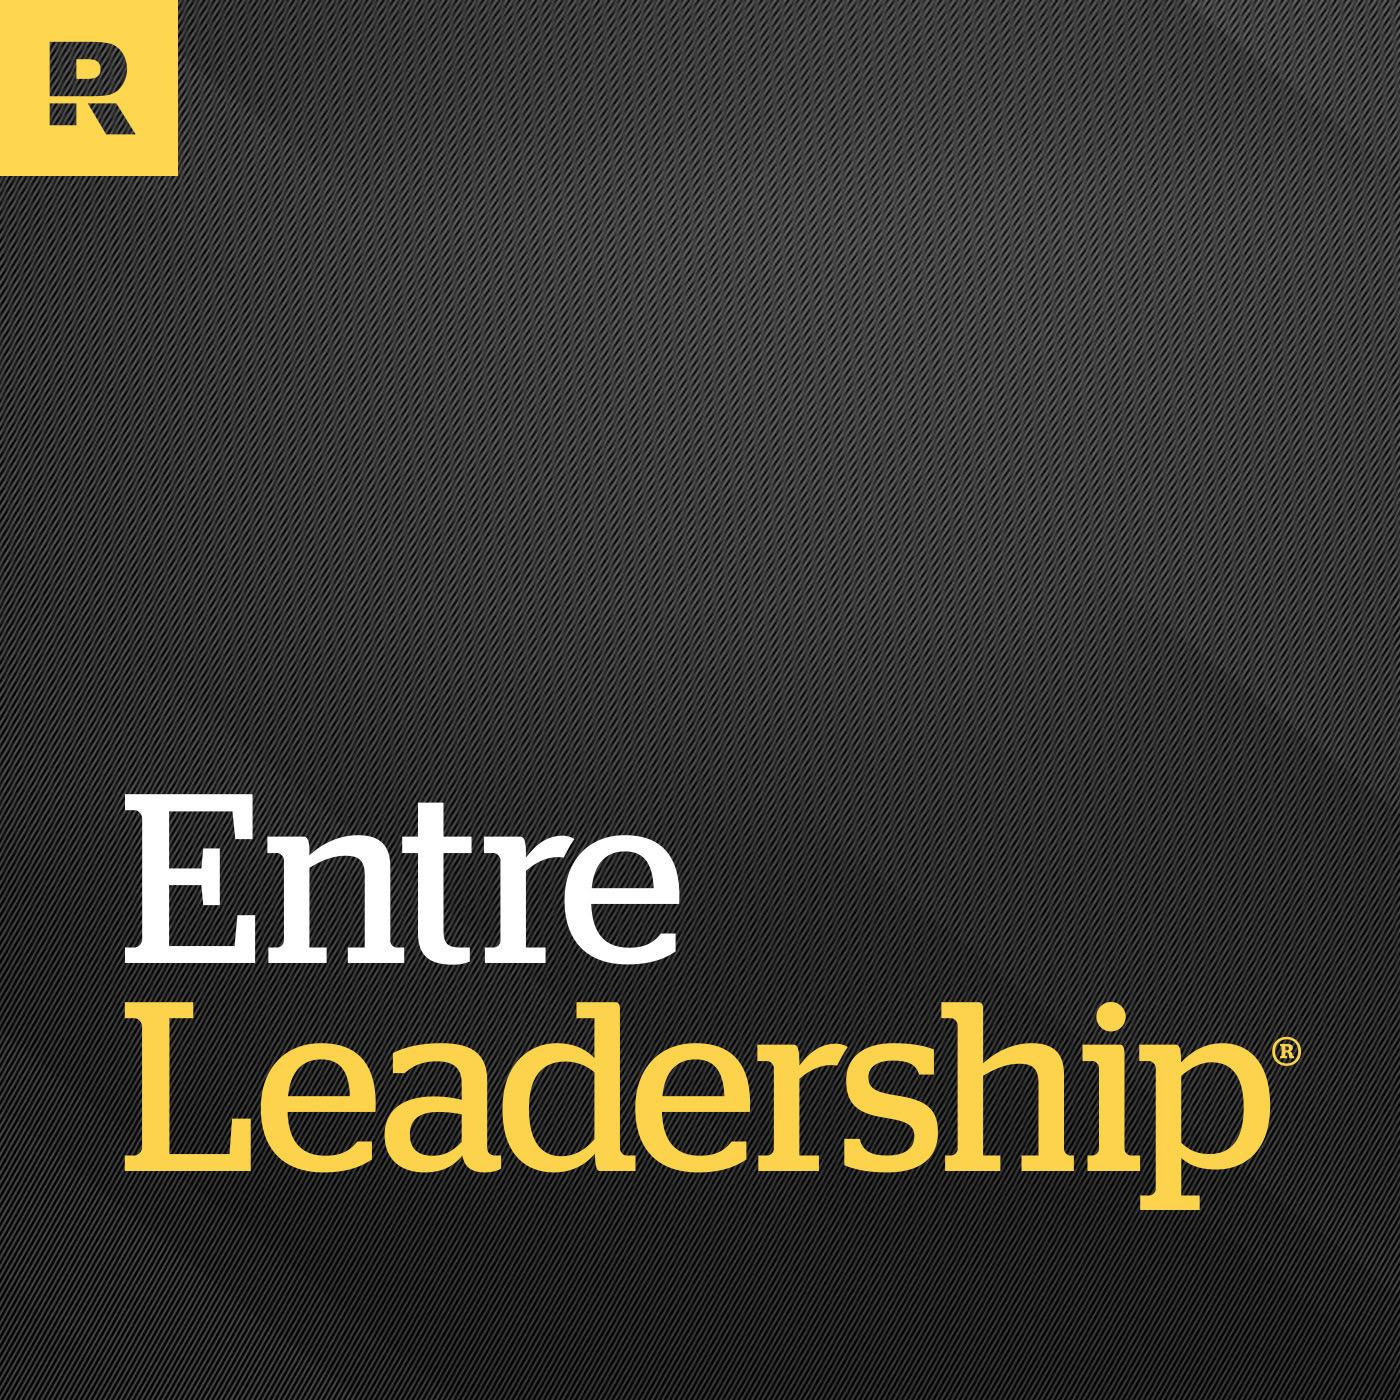 Why Every Leader Fails Without Community with Dr. Darren Whitehead